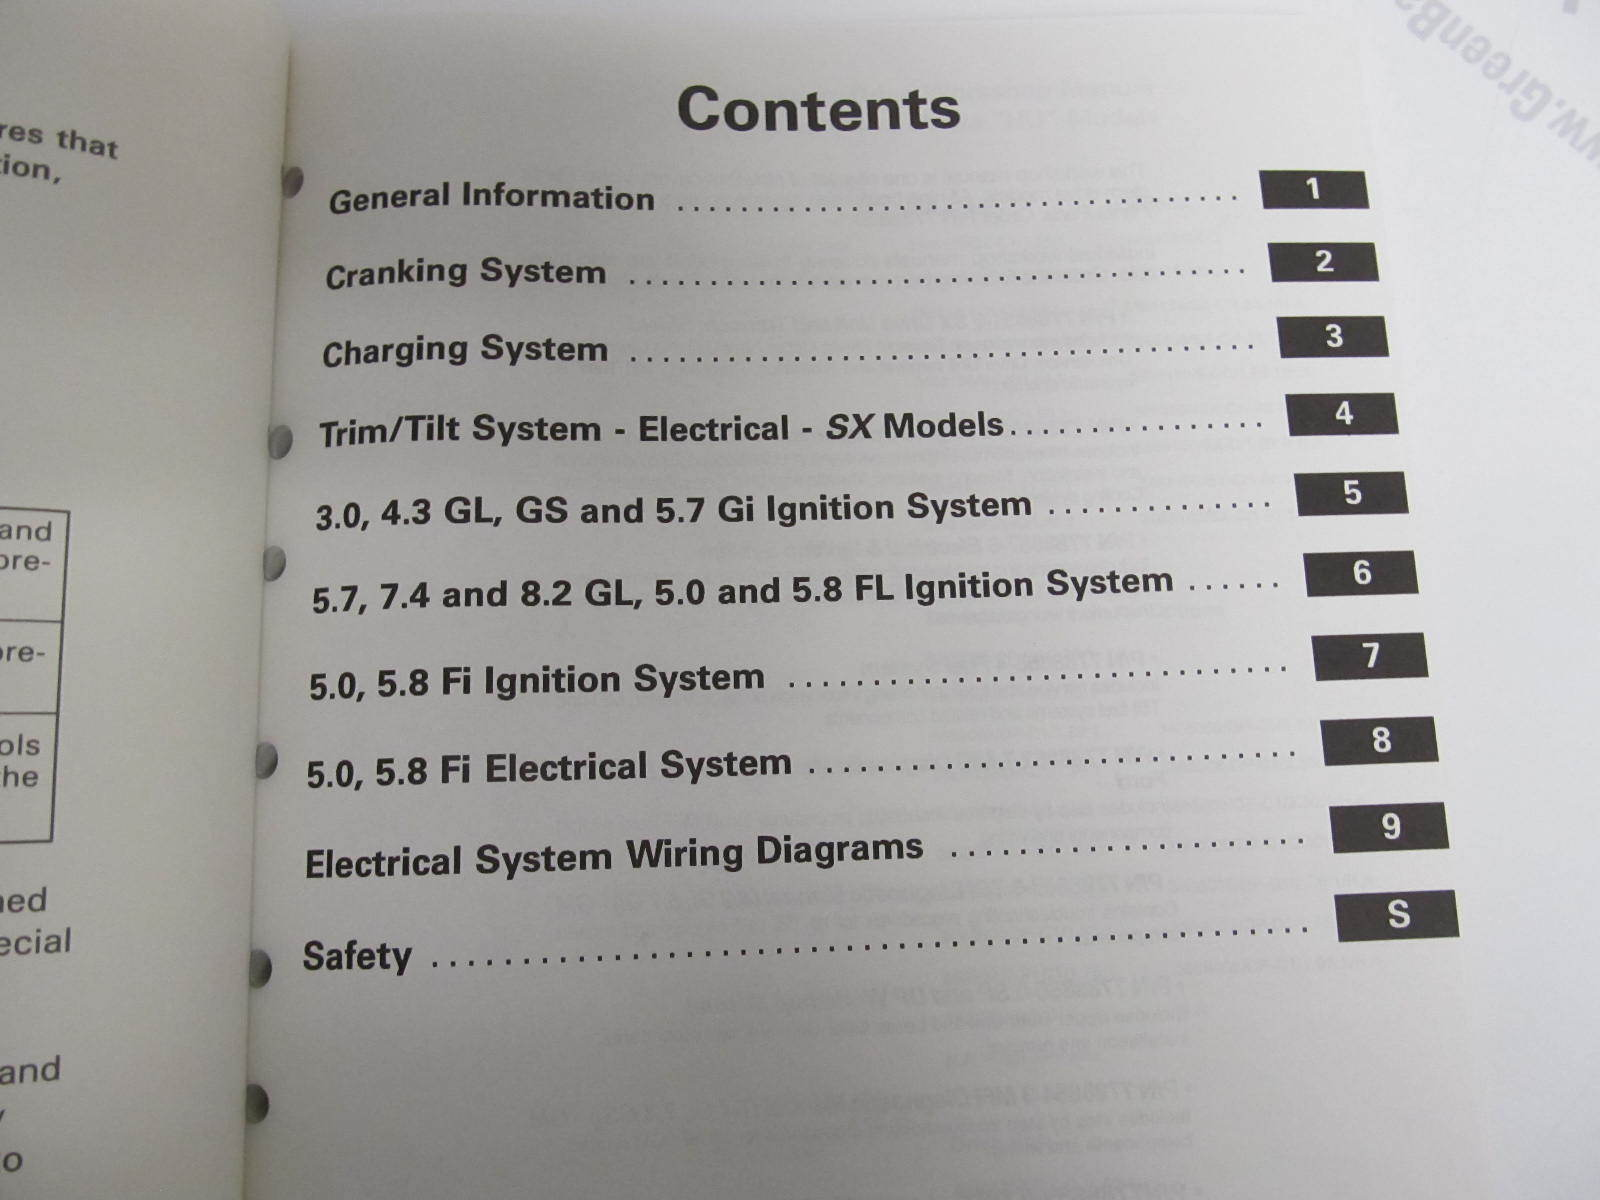 7788857 6 volvo penta hu service workshop manual electrical 7788857 6 volvo penta hu service workshop manual electrical freerunsca Choice Image